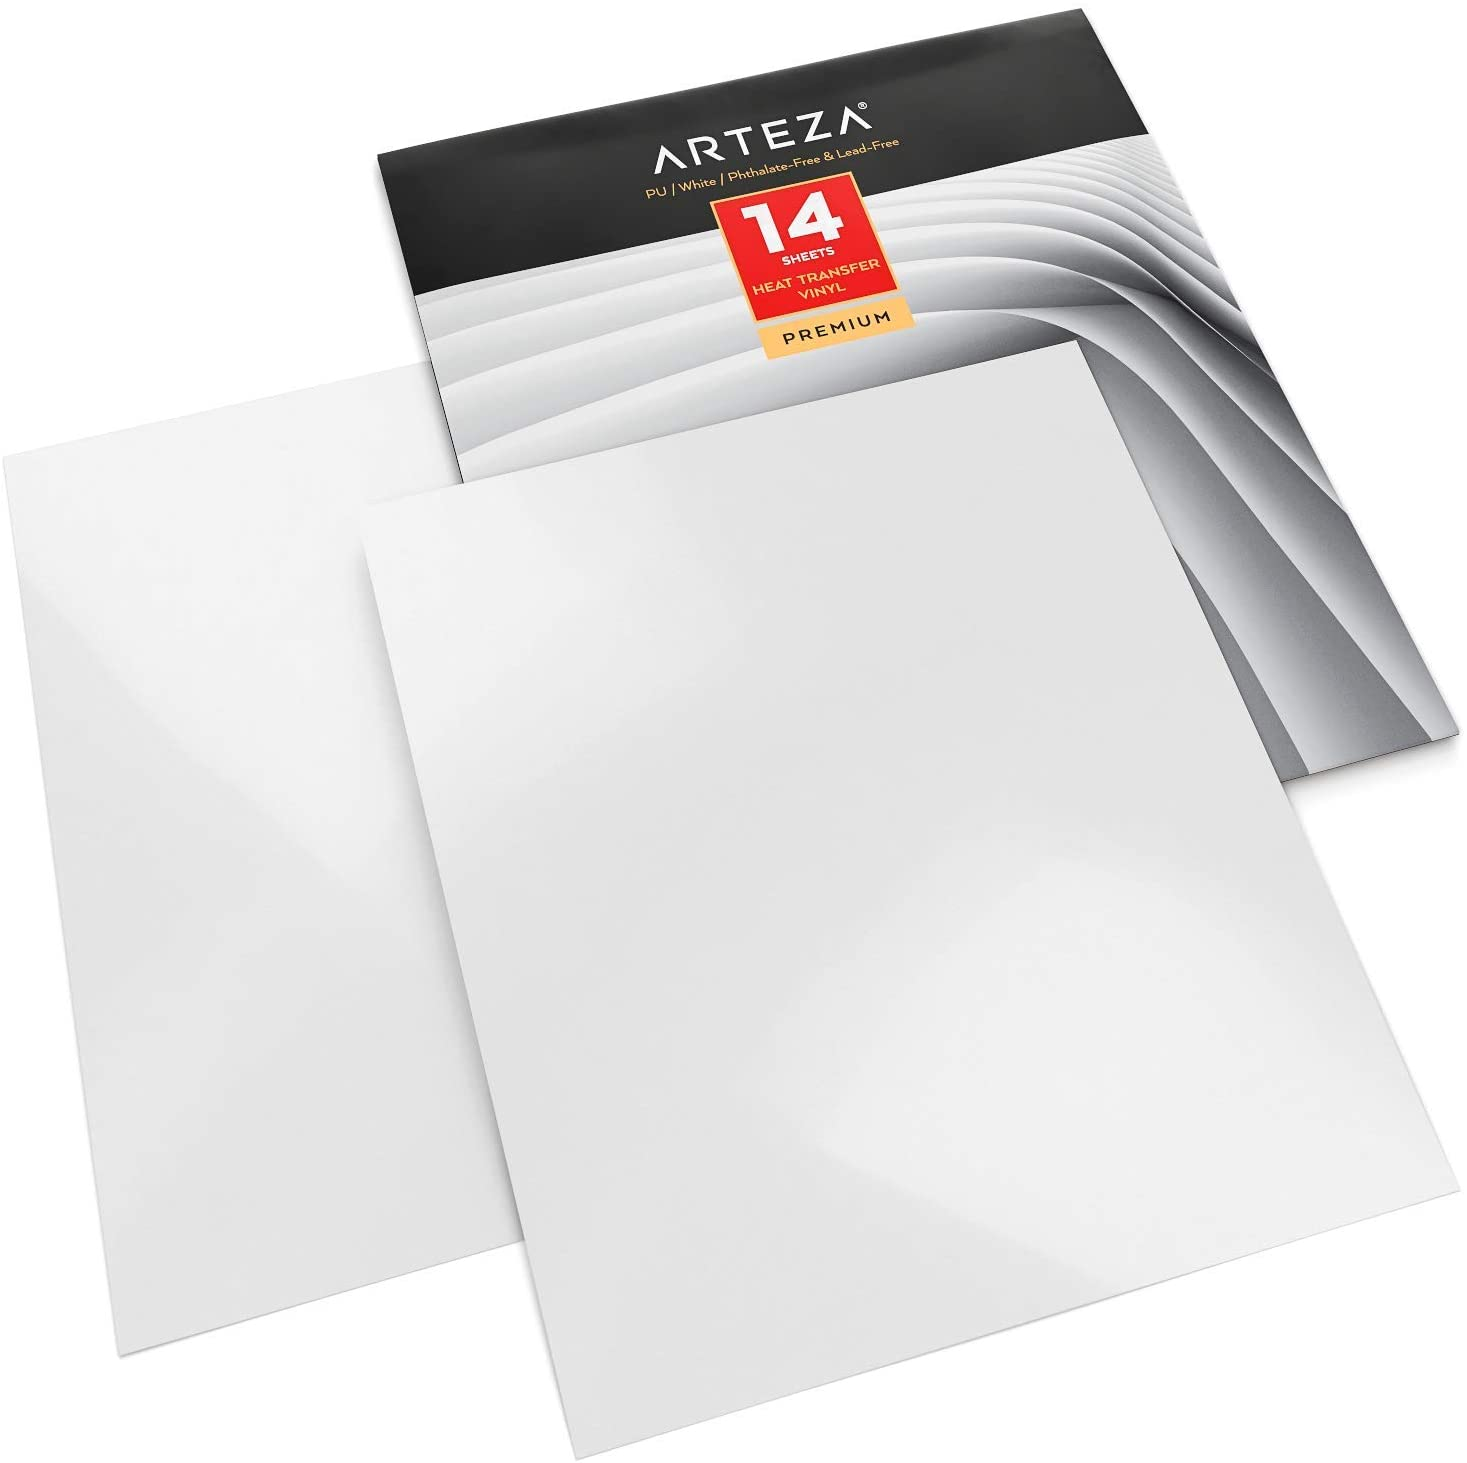 Arteza Heat Transfer Vinyl White HTV Bundle, 14 Iron On Sheets, 10x12 Inches, Flexible & Easy to Weed, Use with Any Craft Cutting Machine, Boxed